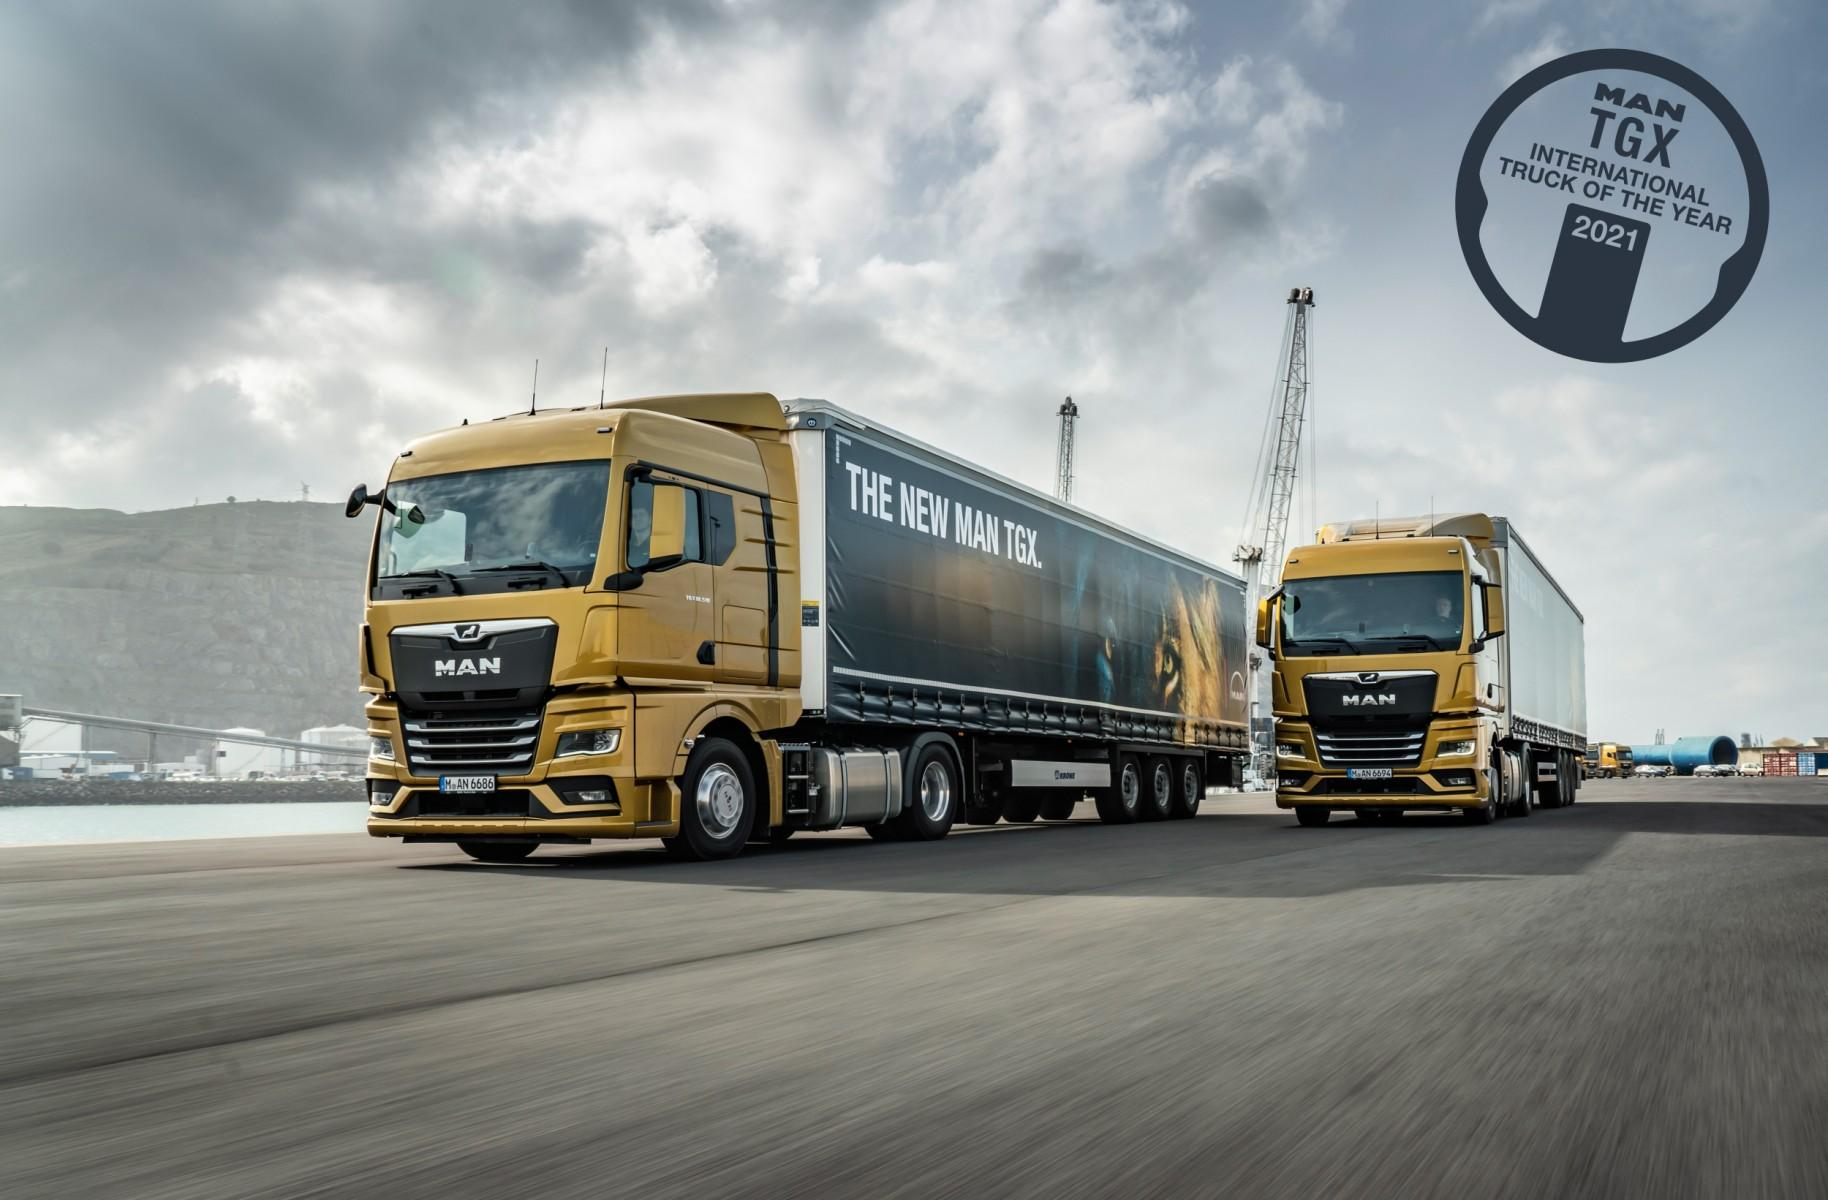 MAN TGX wins International Truck of the Year 2021